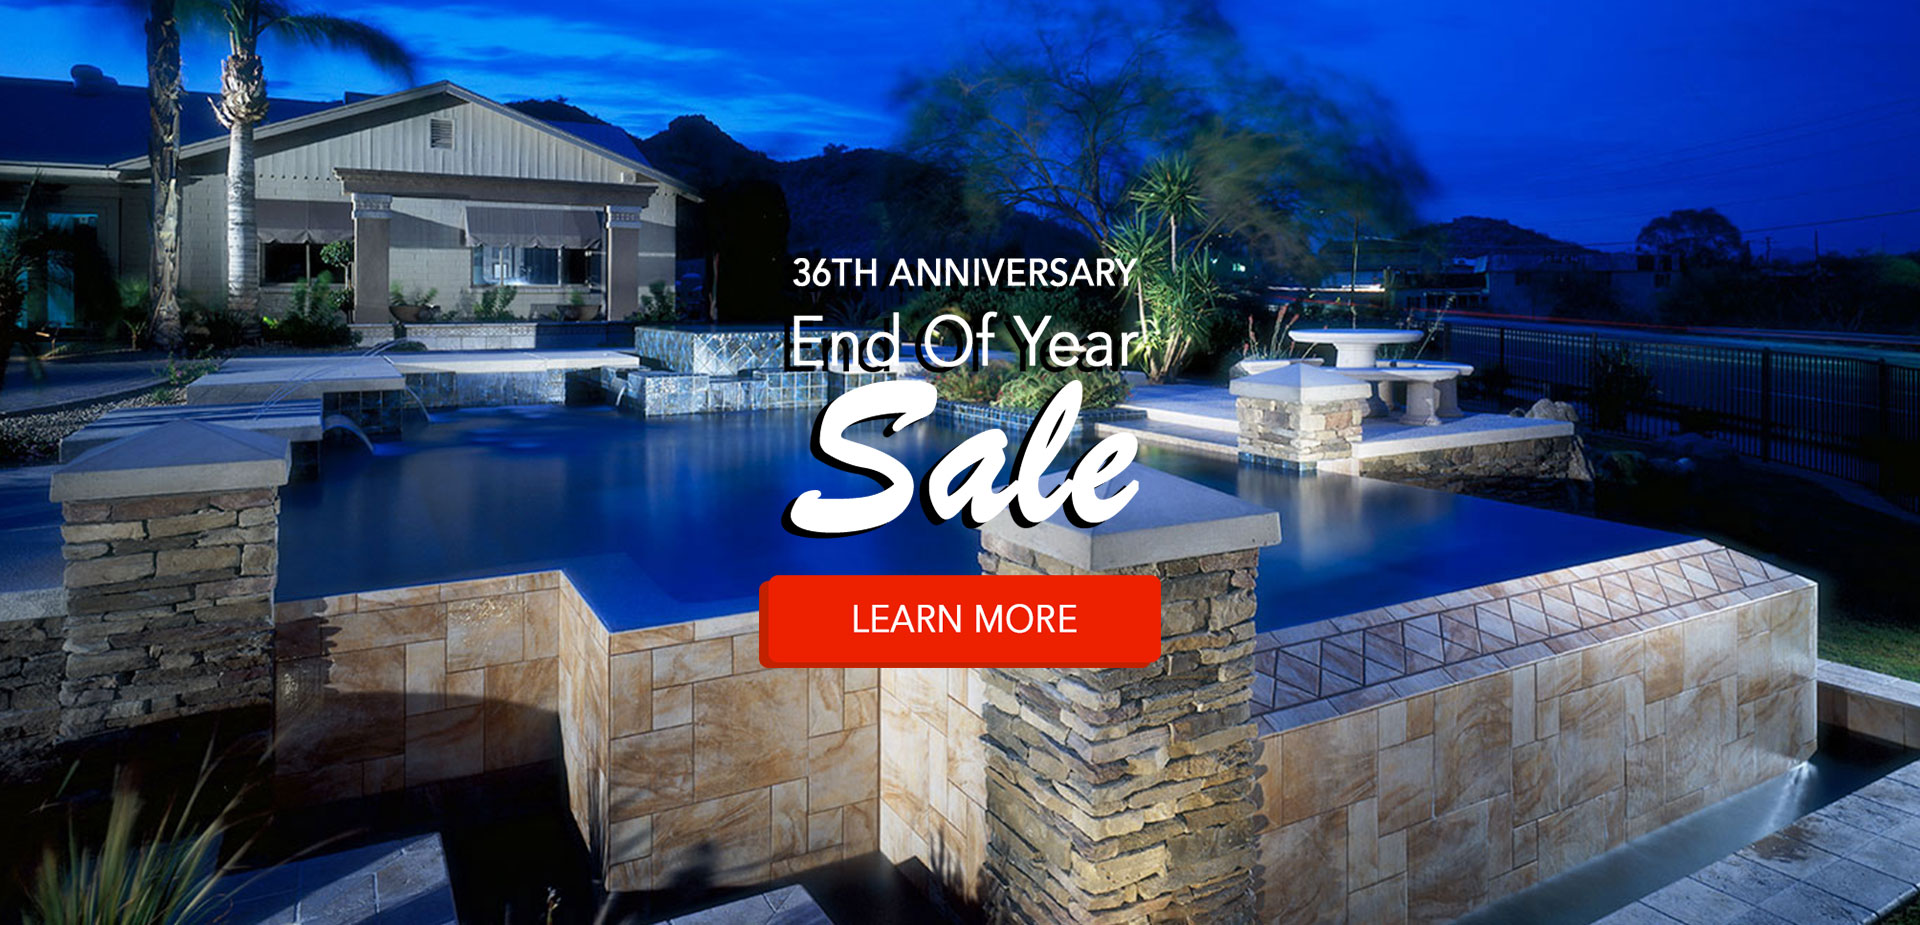 End_of_year_sale2